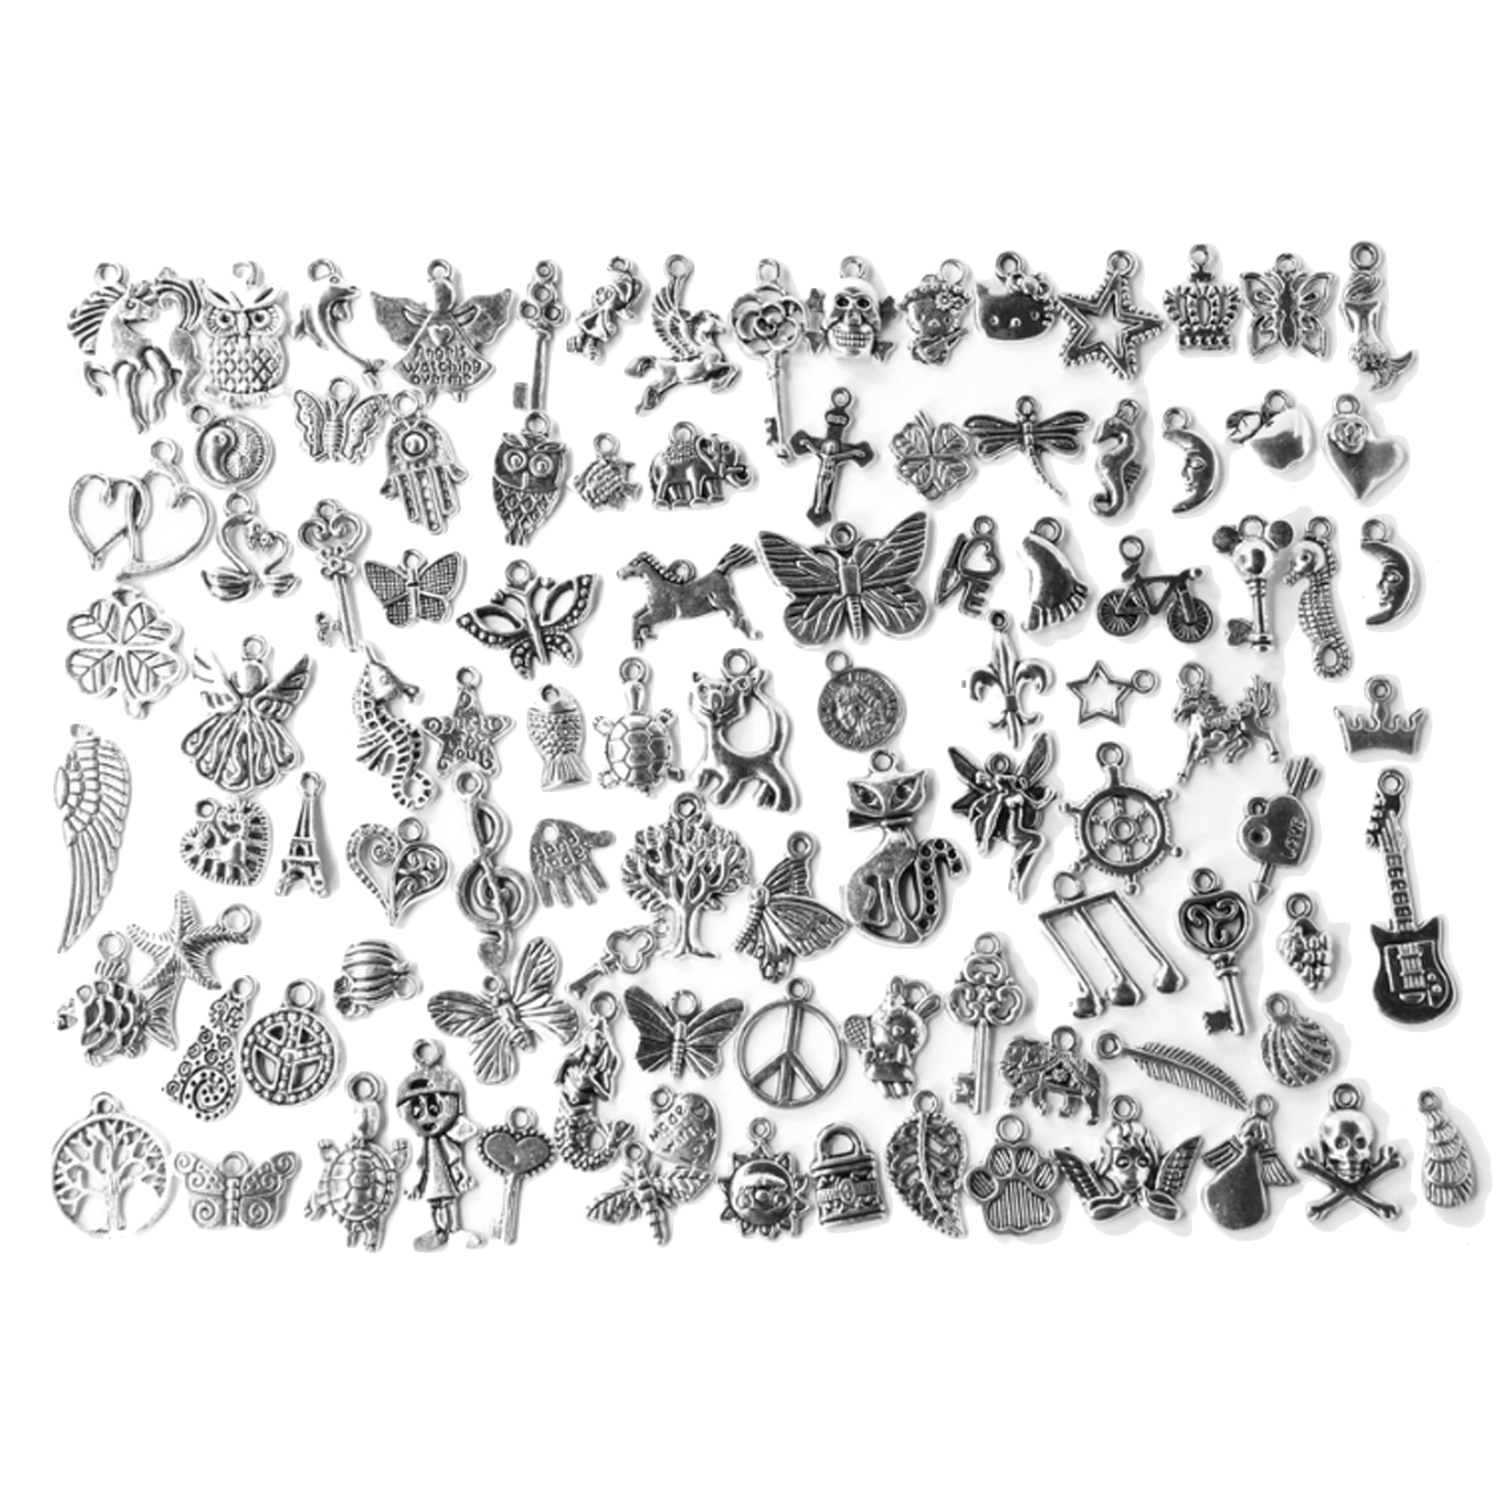 100 Styles Alloy Mixed Pendant Charms Handmade Toys Gifts For DIY Necklace Bracelet Making Crafting Dangle Keychain